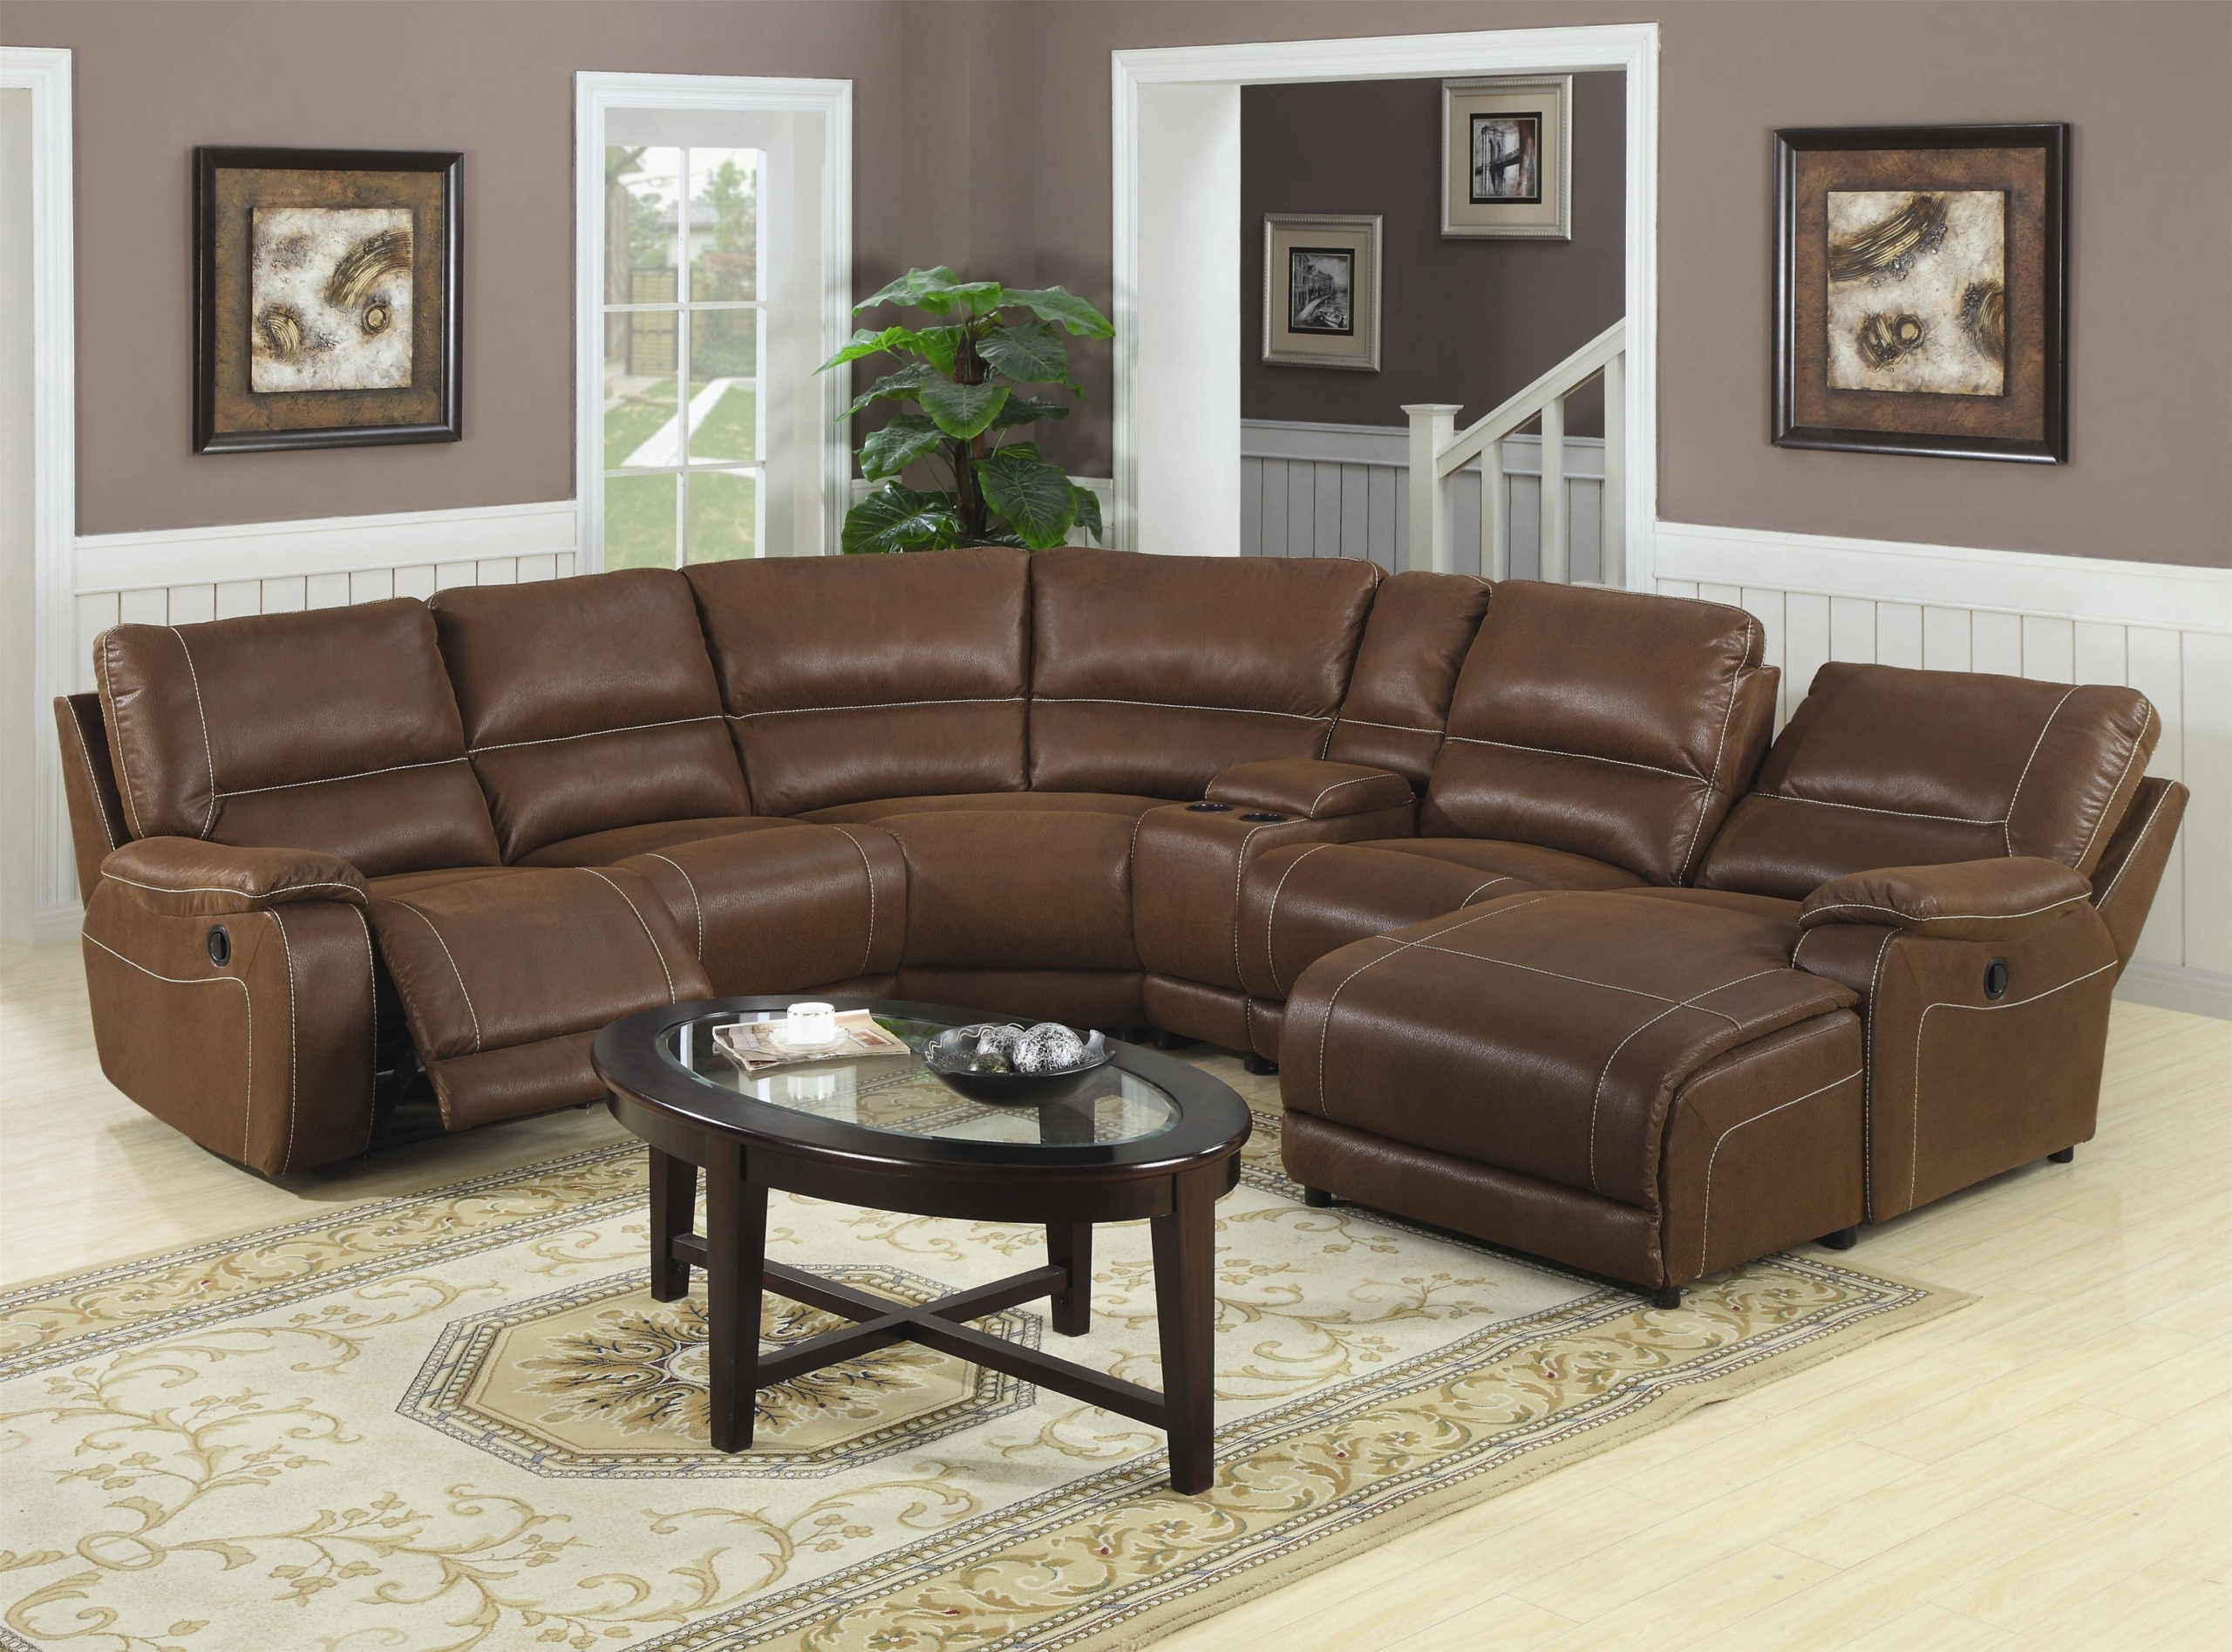 Gentil Small Sectional Sofa With Recliner 1